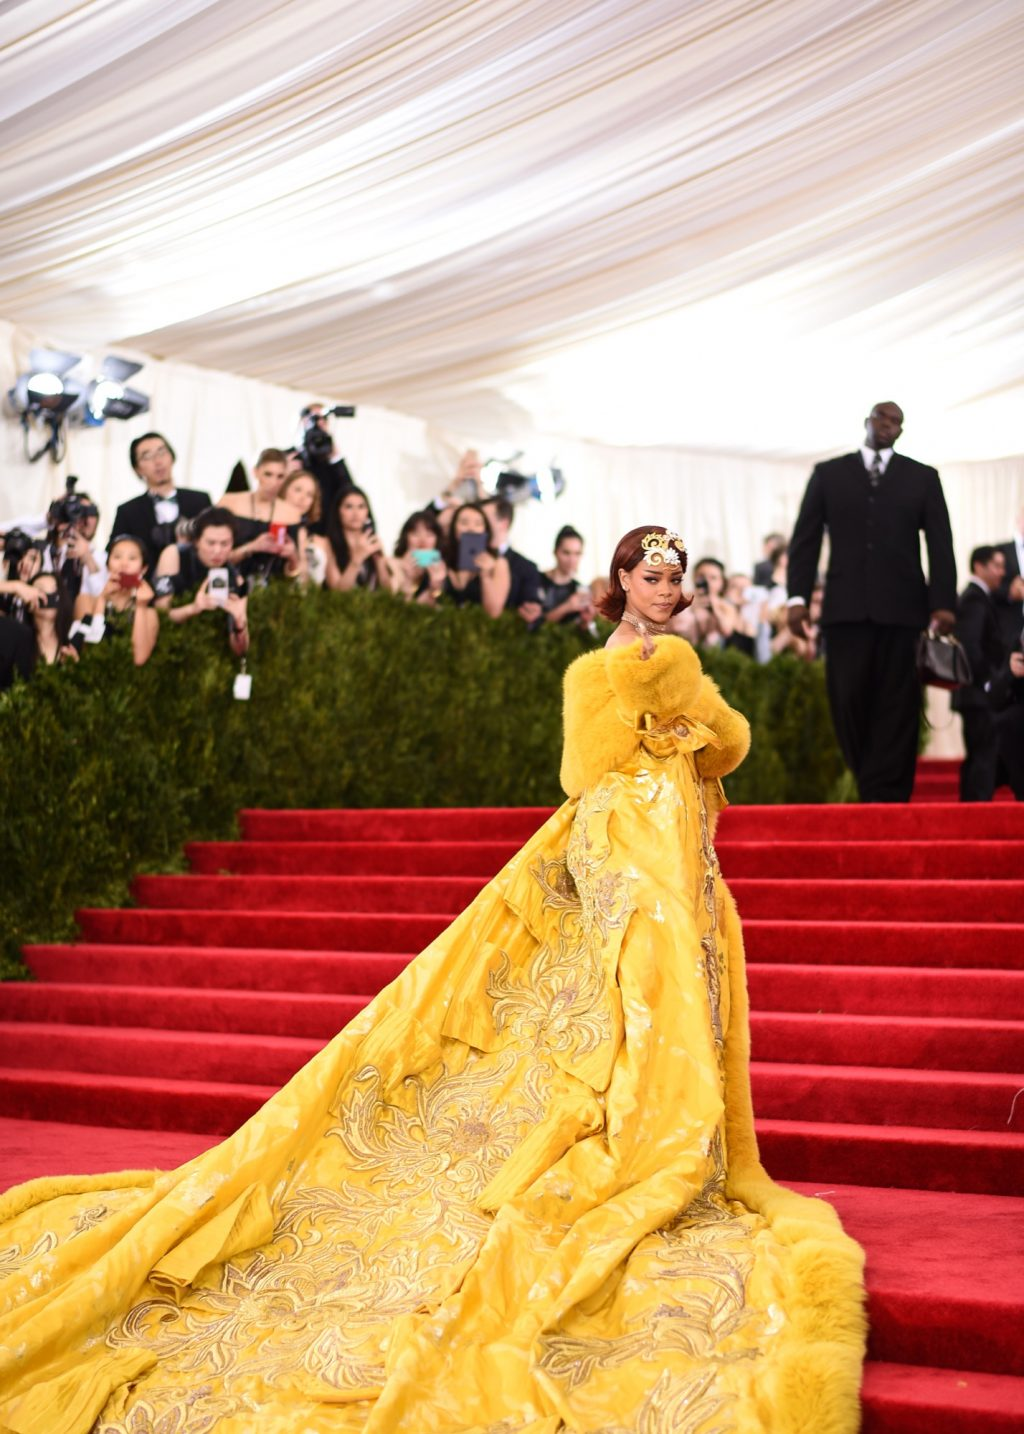 From Rihanna to Queen Rania – 22 Years of Met Gala Looks We've Loved